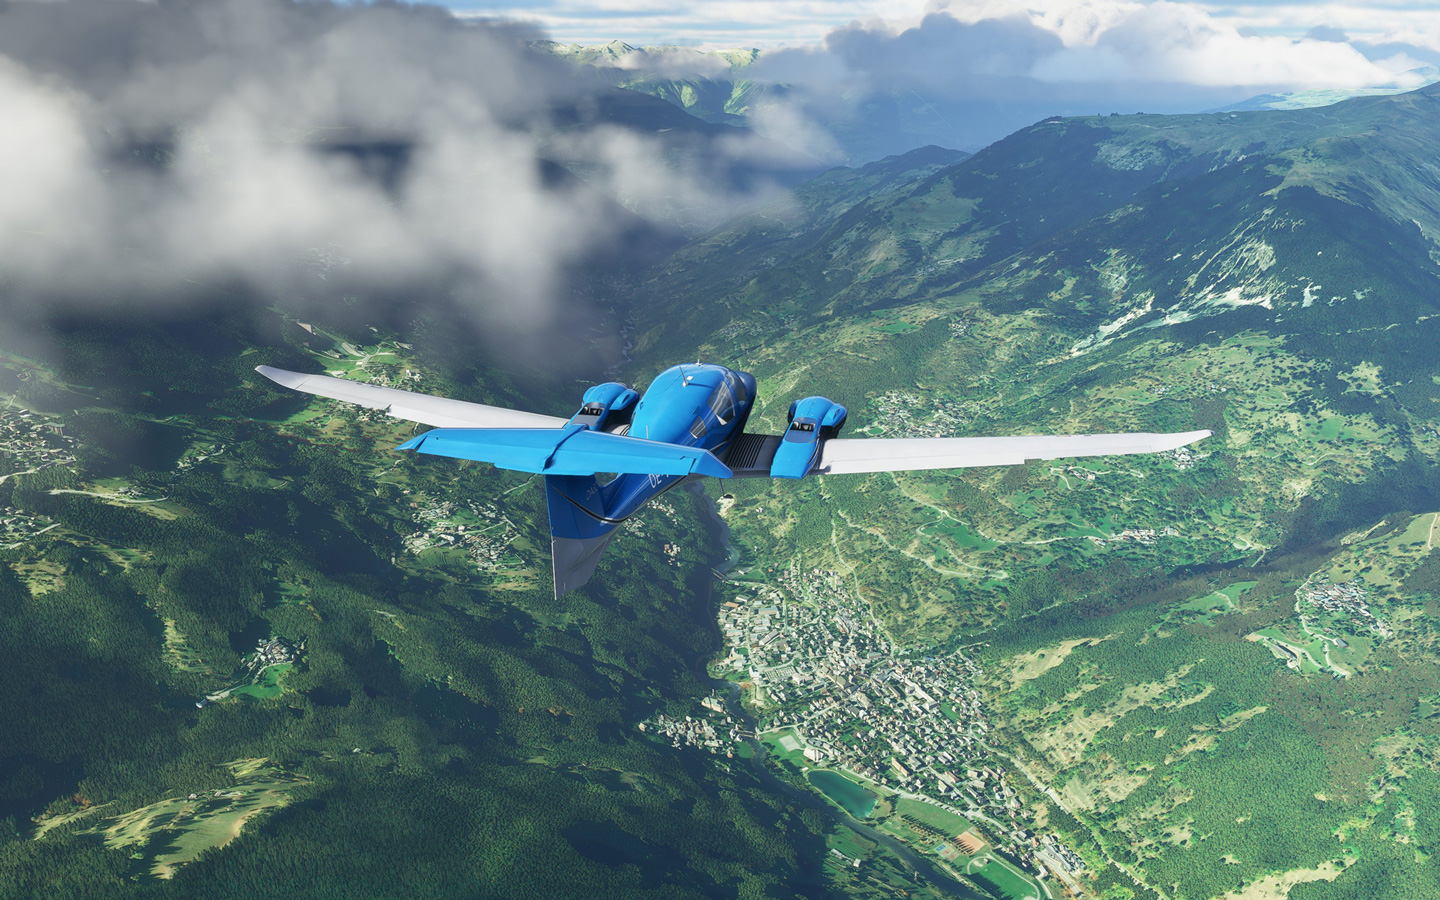 Microsoft Flight Simulator (2020) Wallpaper in 1440x900